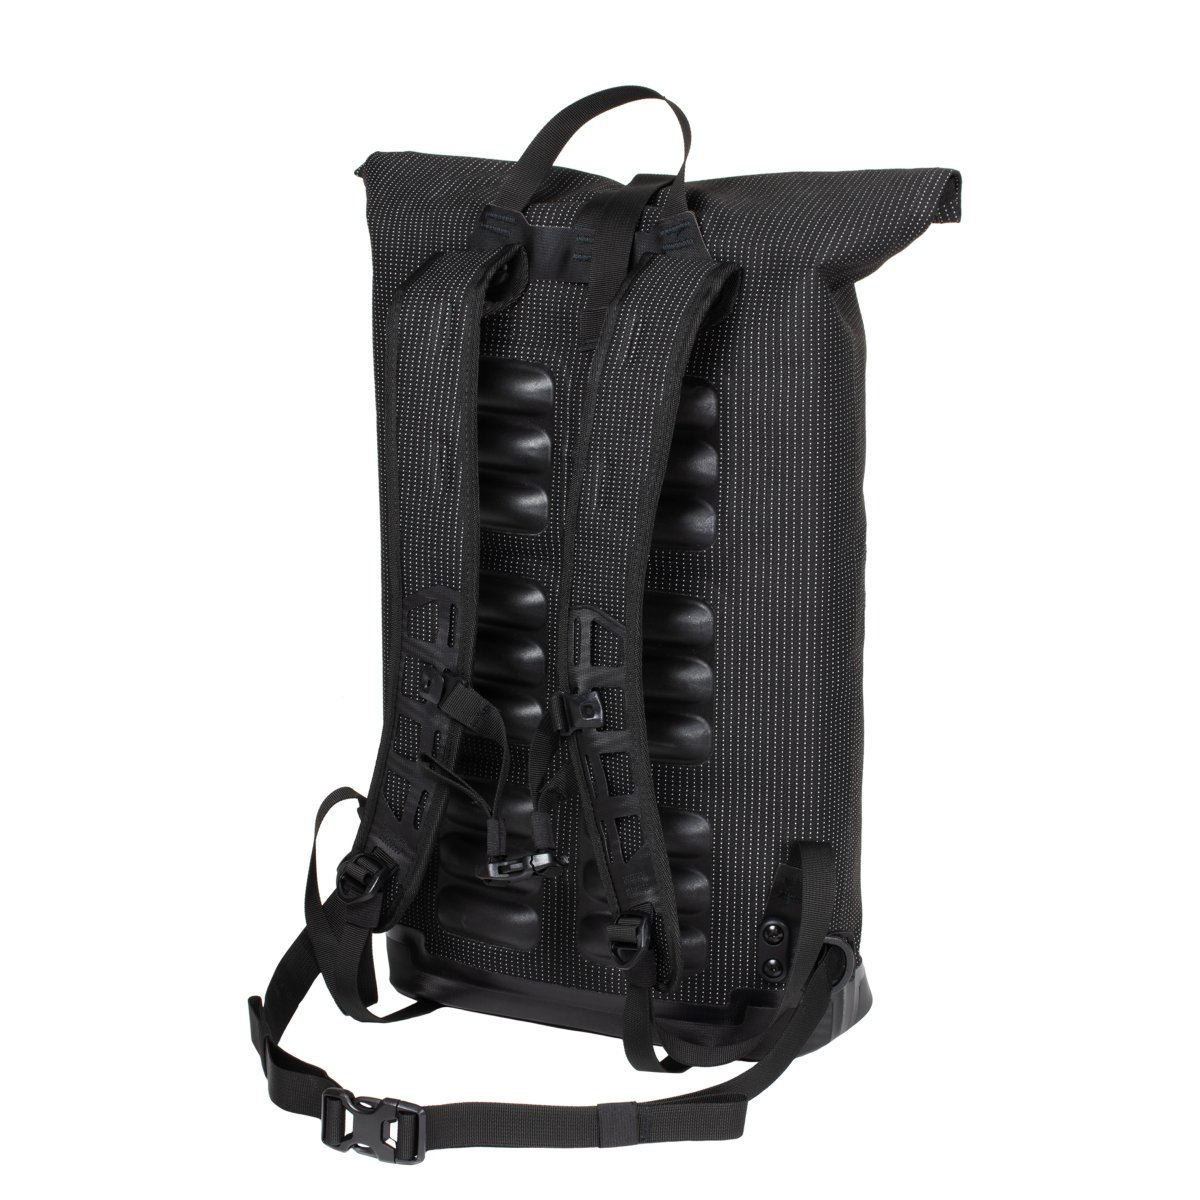 Ortlieb - Commuter-Daypack High Visibility, Rucksack